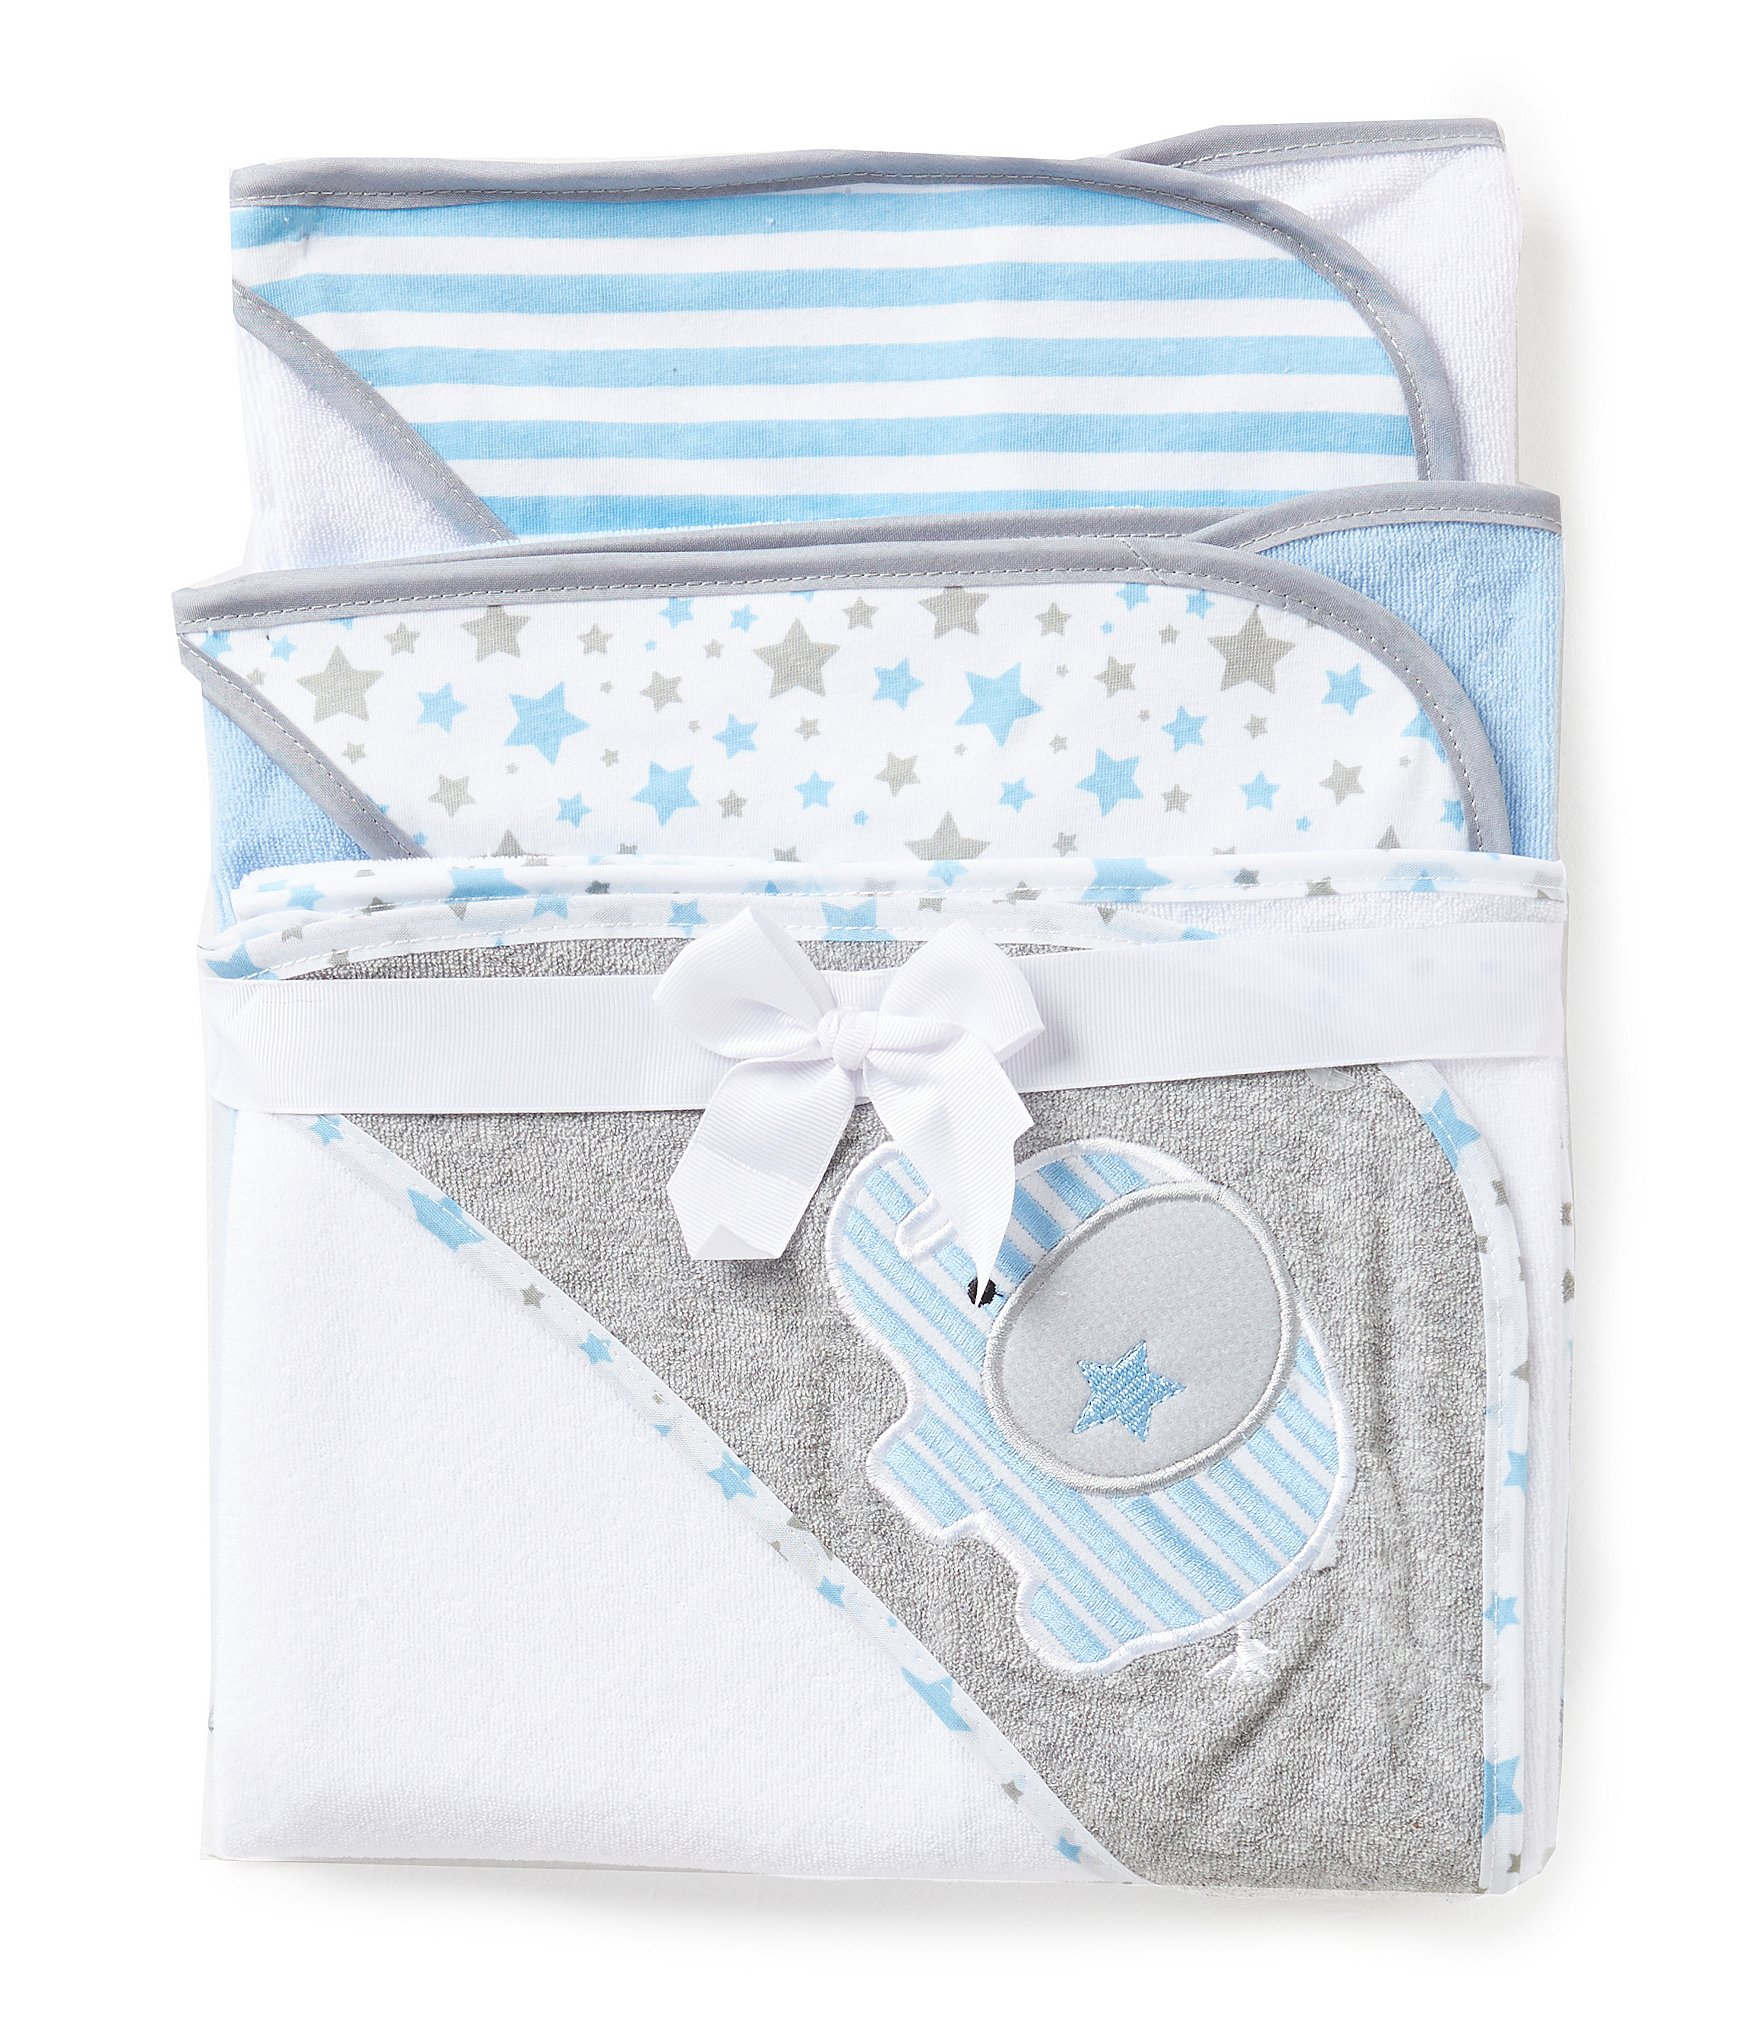 Starting Out 3 Pack Hooded Bath Towel Set Dillards